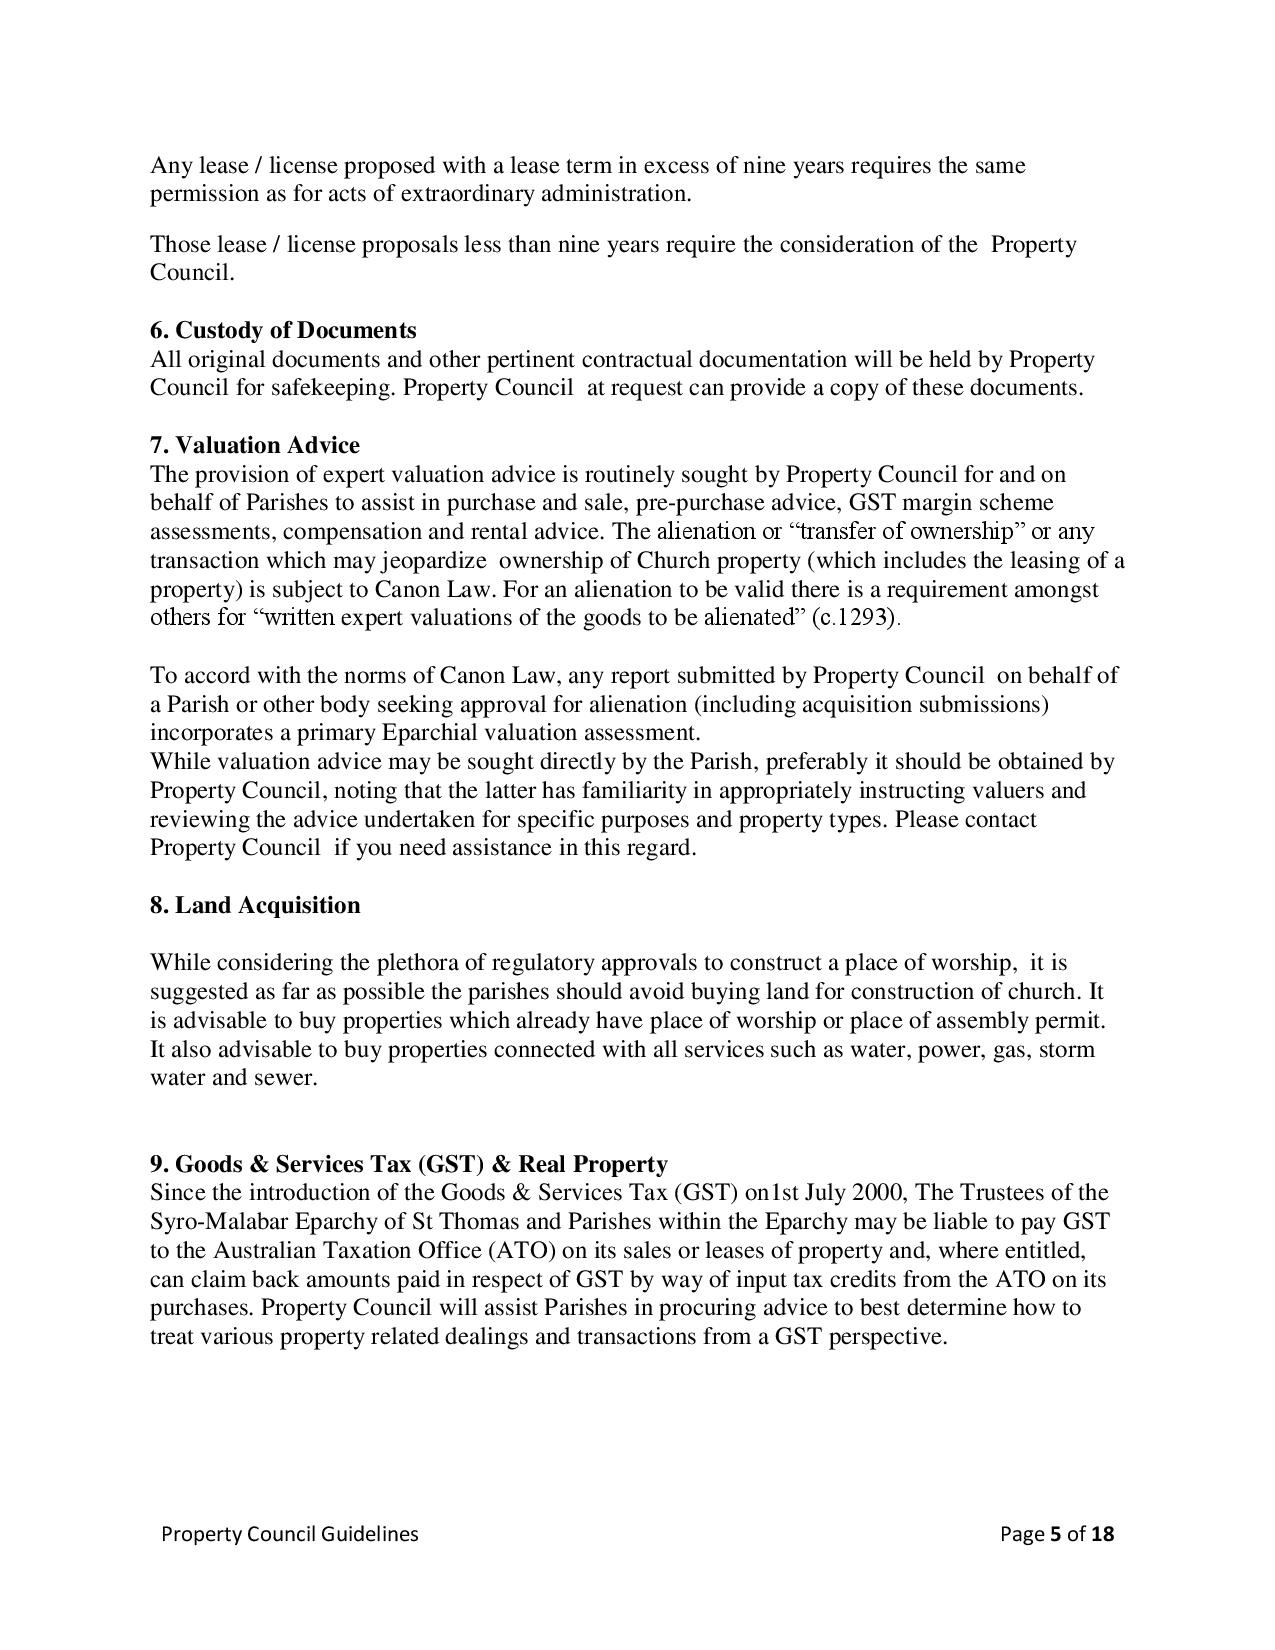 property-council-guidlines-v2-4-page-005